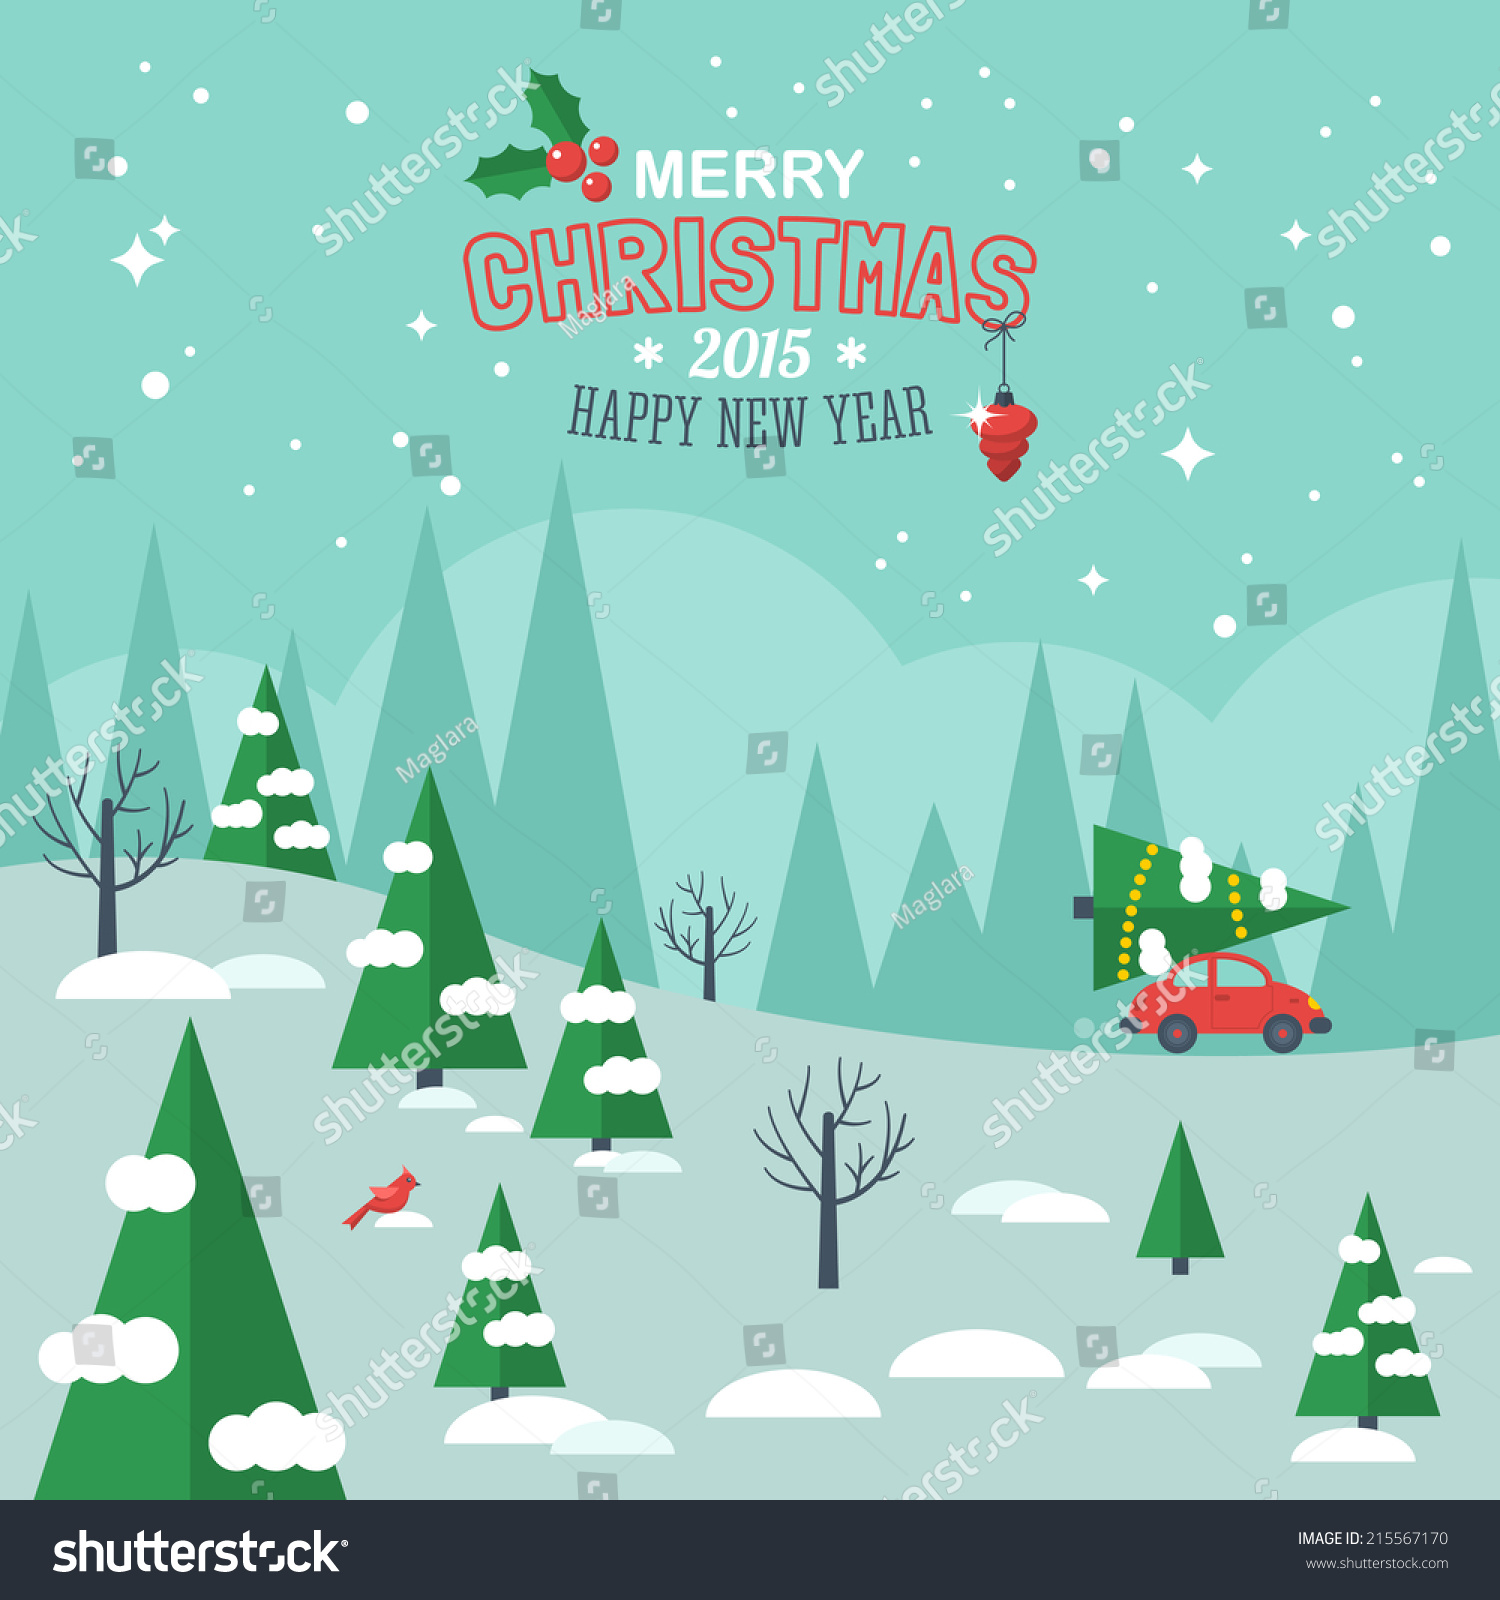 Decorating Tips For A Modern Merry Christmas: Flat Design Modern Vector Illustration For Christmas